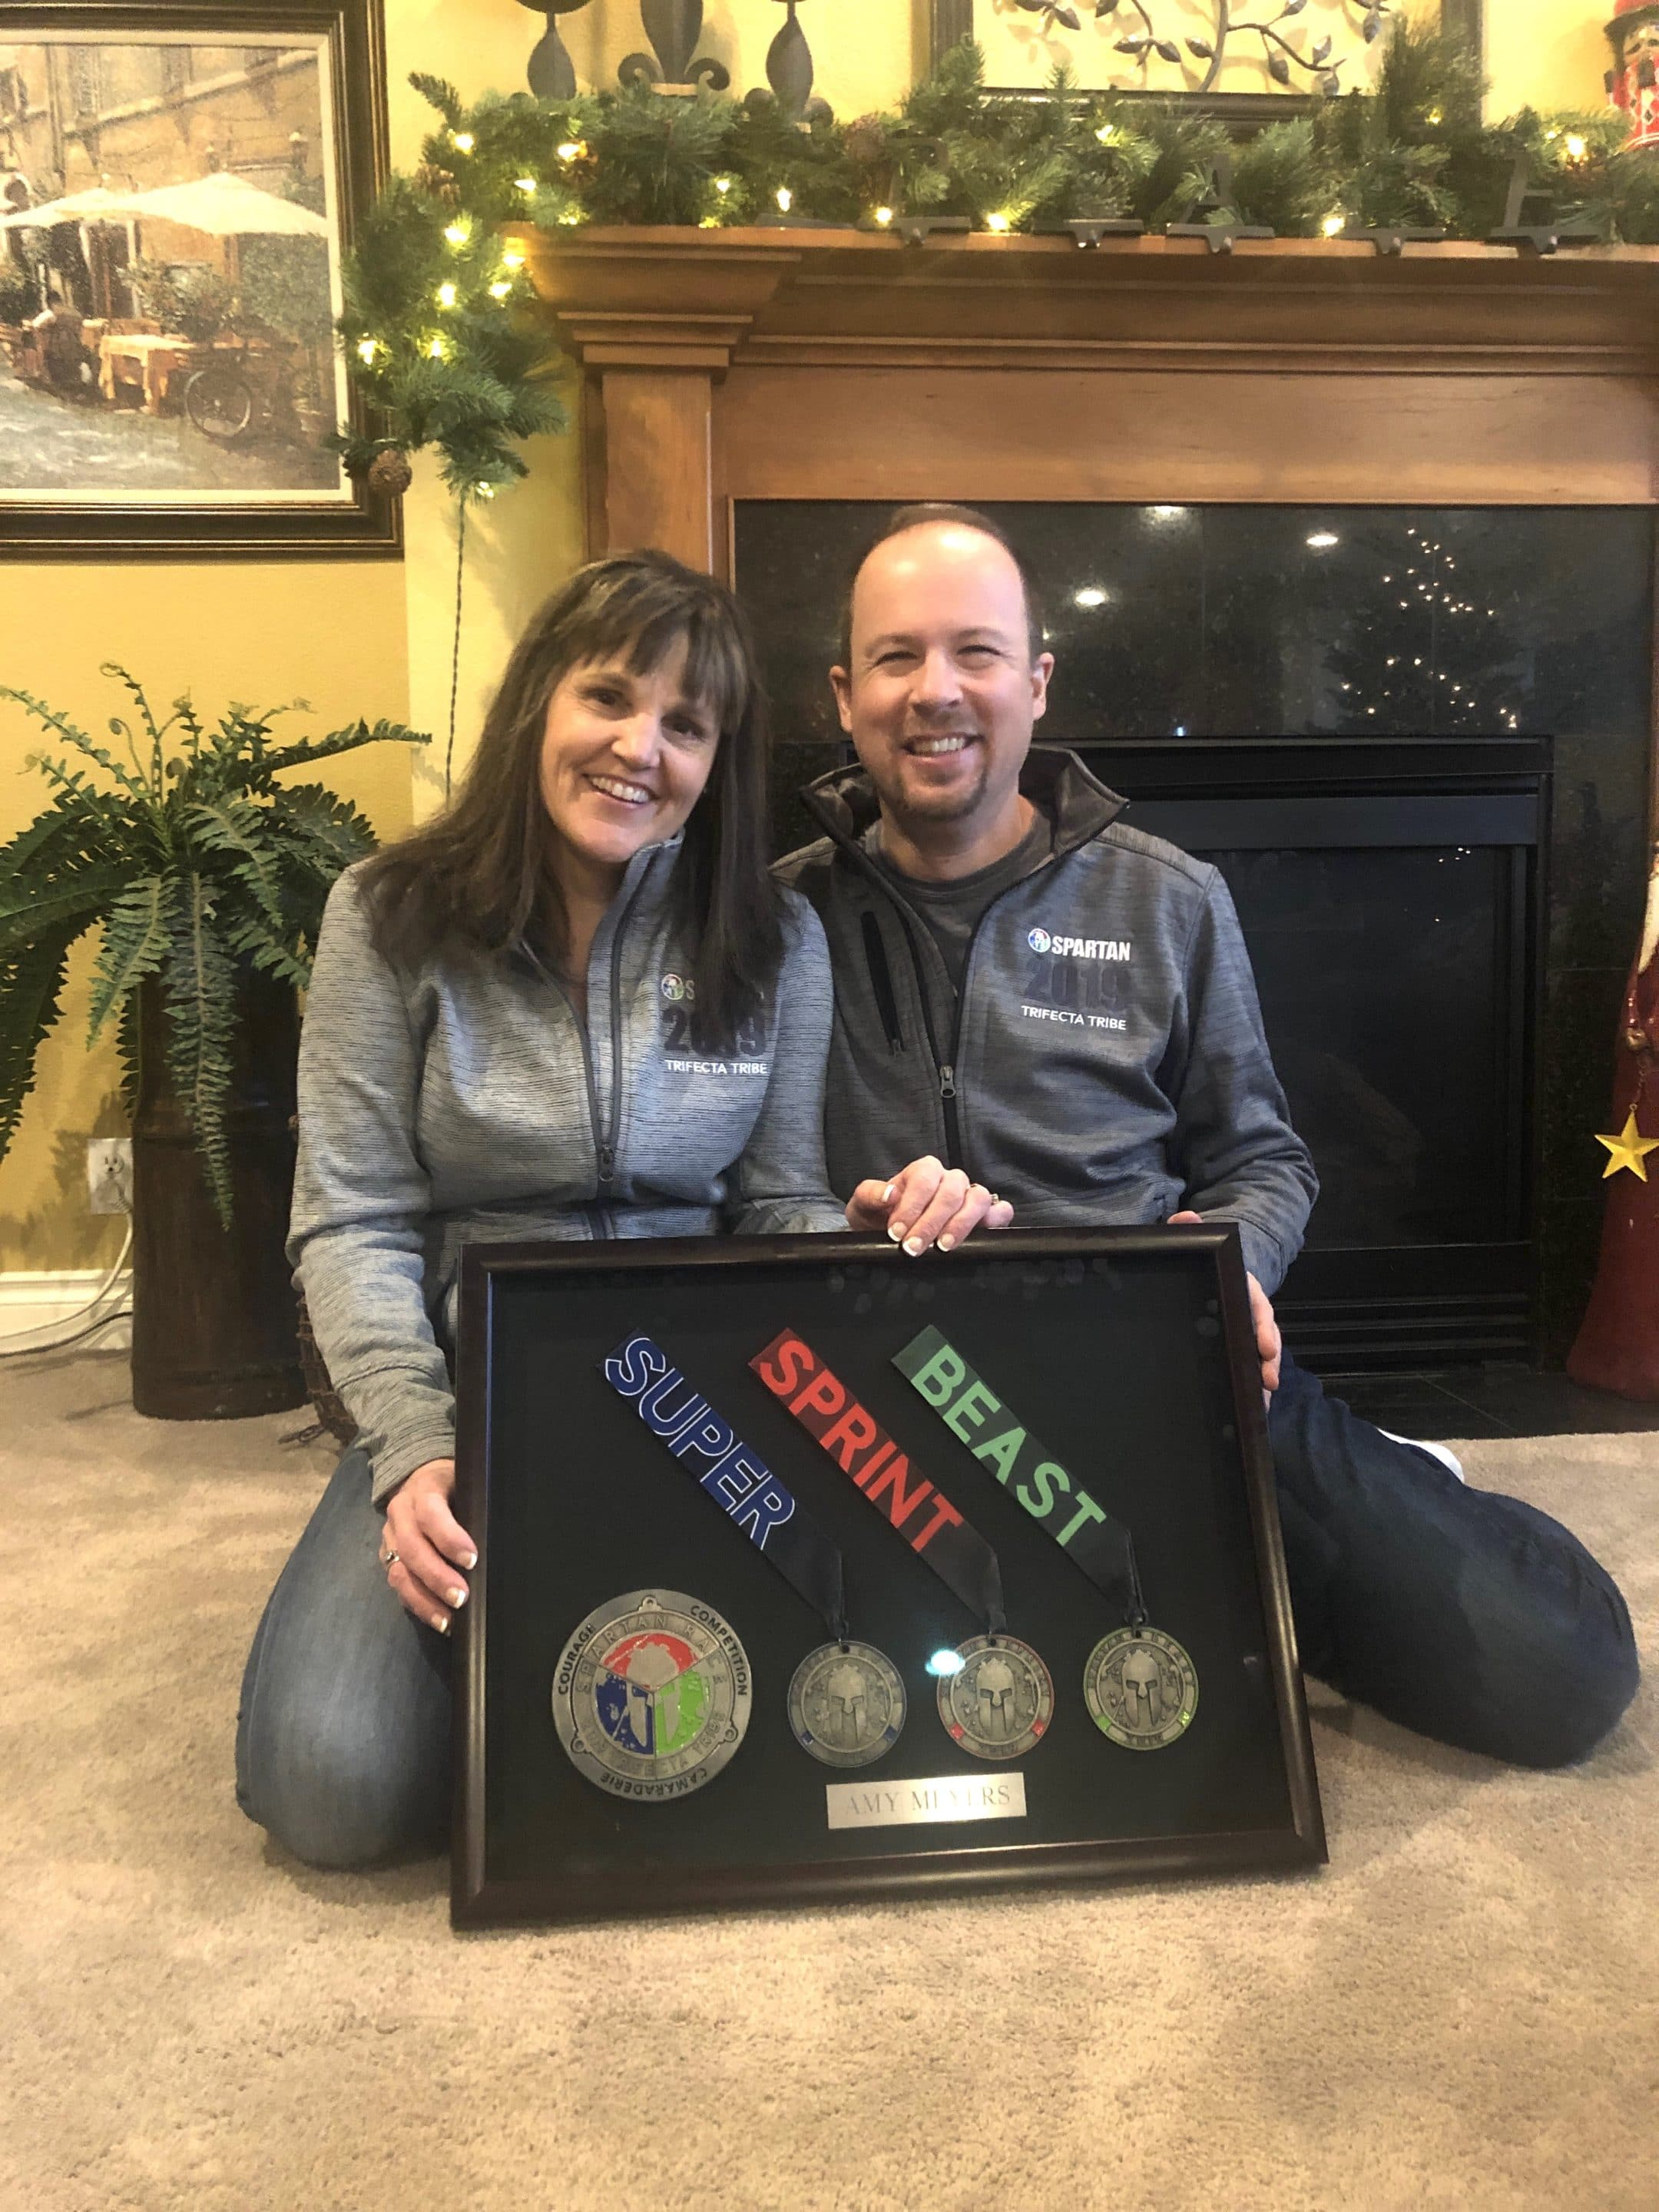 A couple who won a Spartan Obstacle course race and renewed the passion in their marriage